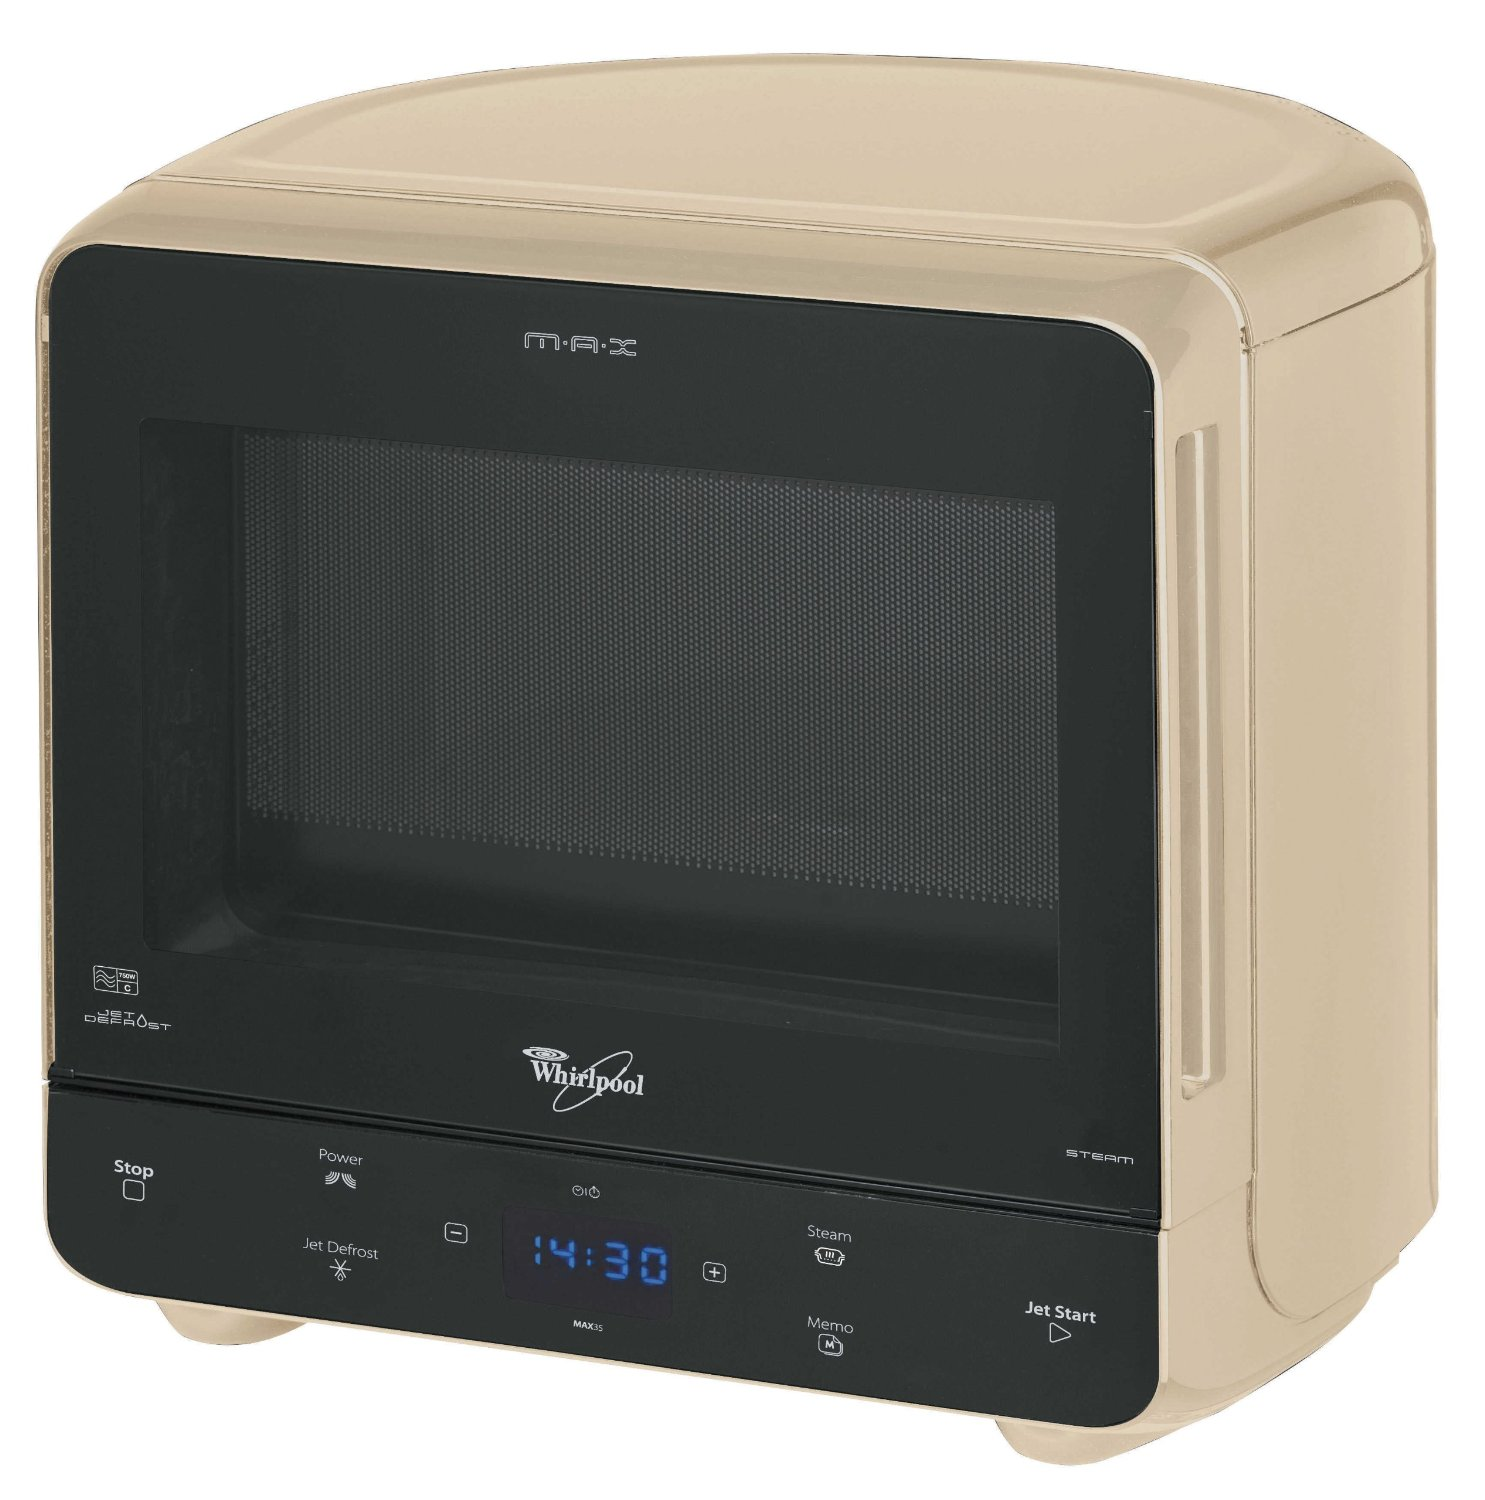 Whirlpool Max 35 Solo And Steam Microwave Review Cream